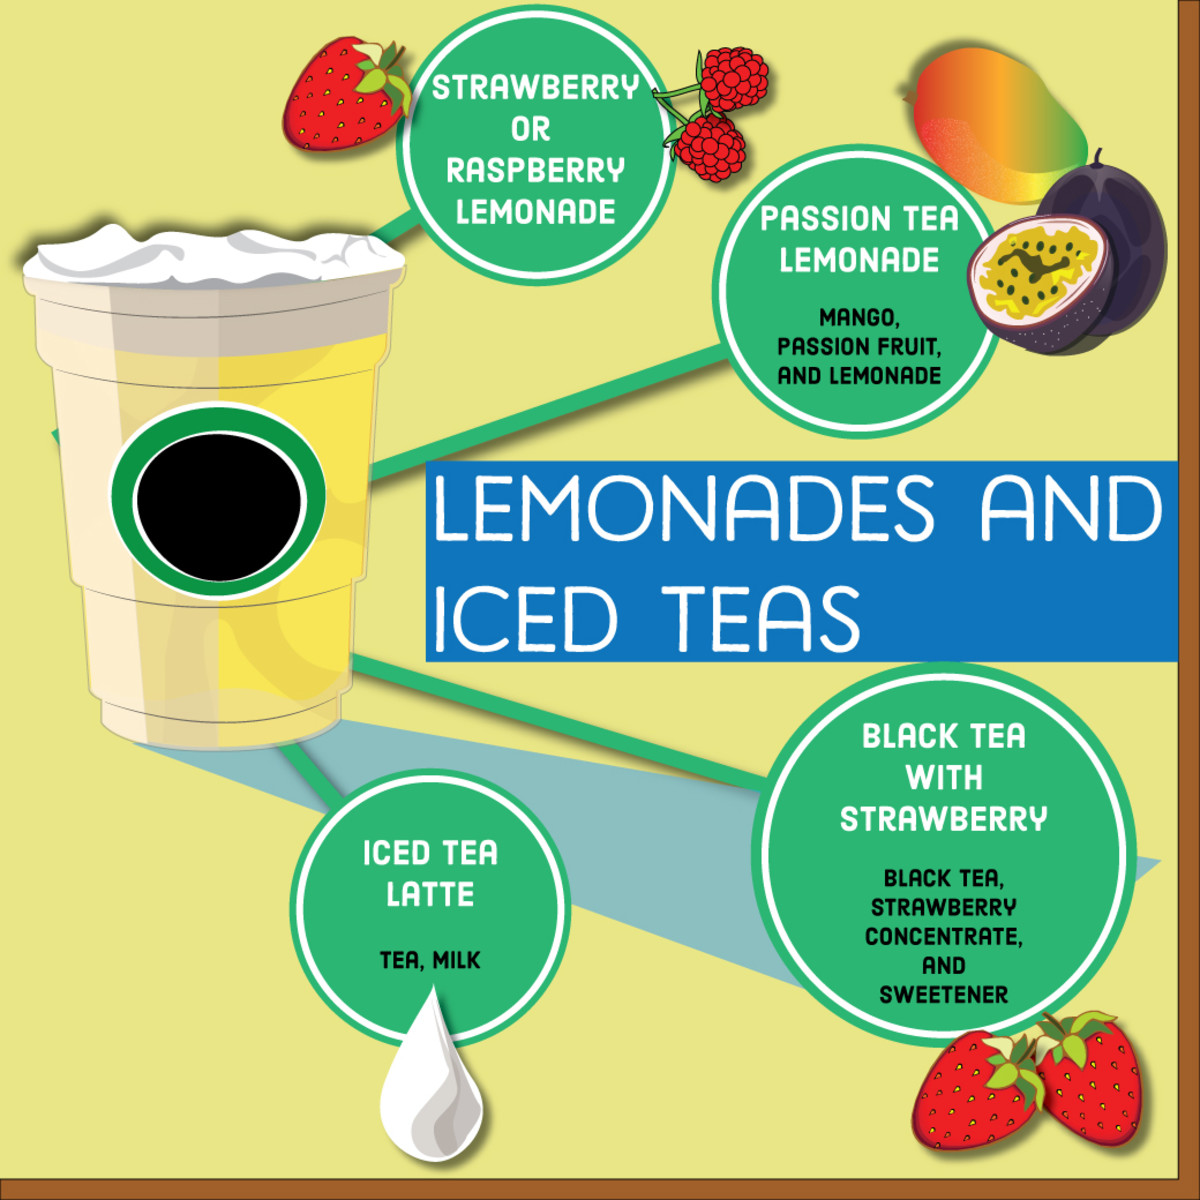 Hot outside? Here are some of the best lemonades and iced teas. You can get any tea as a latte or with strawberry or raspberry concentrate.